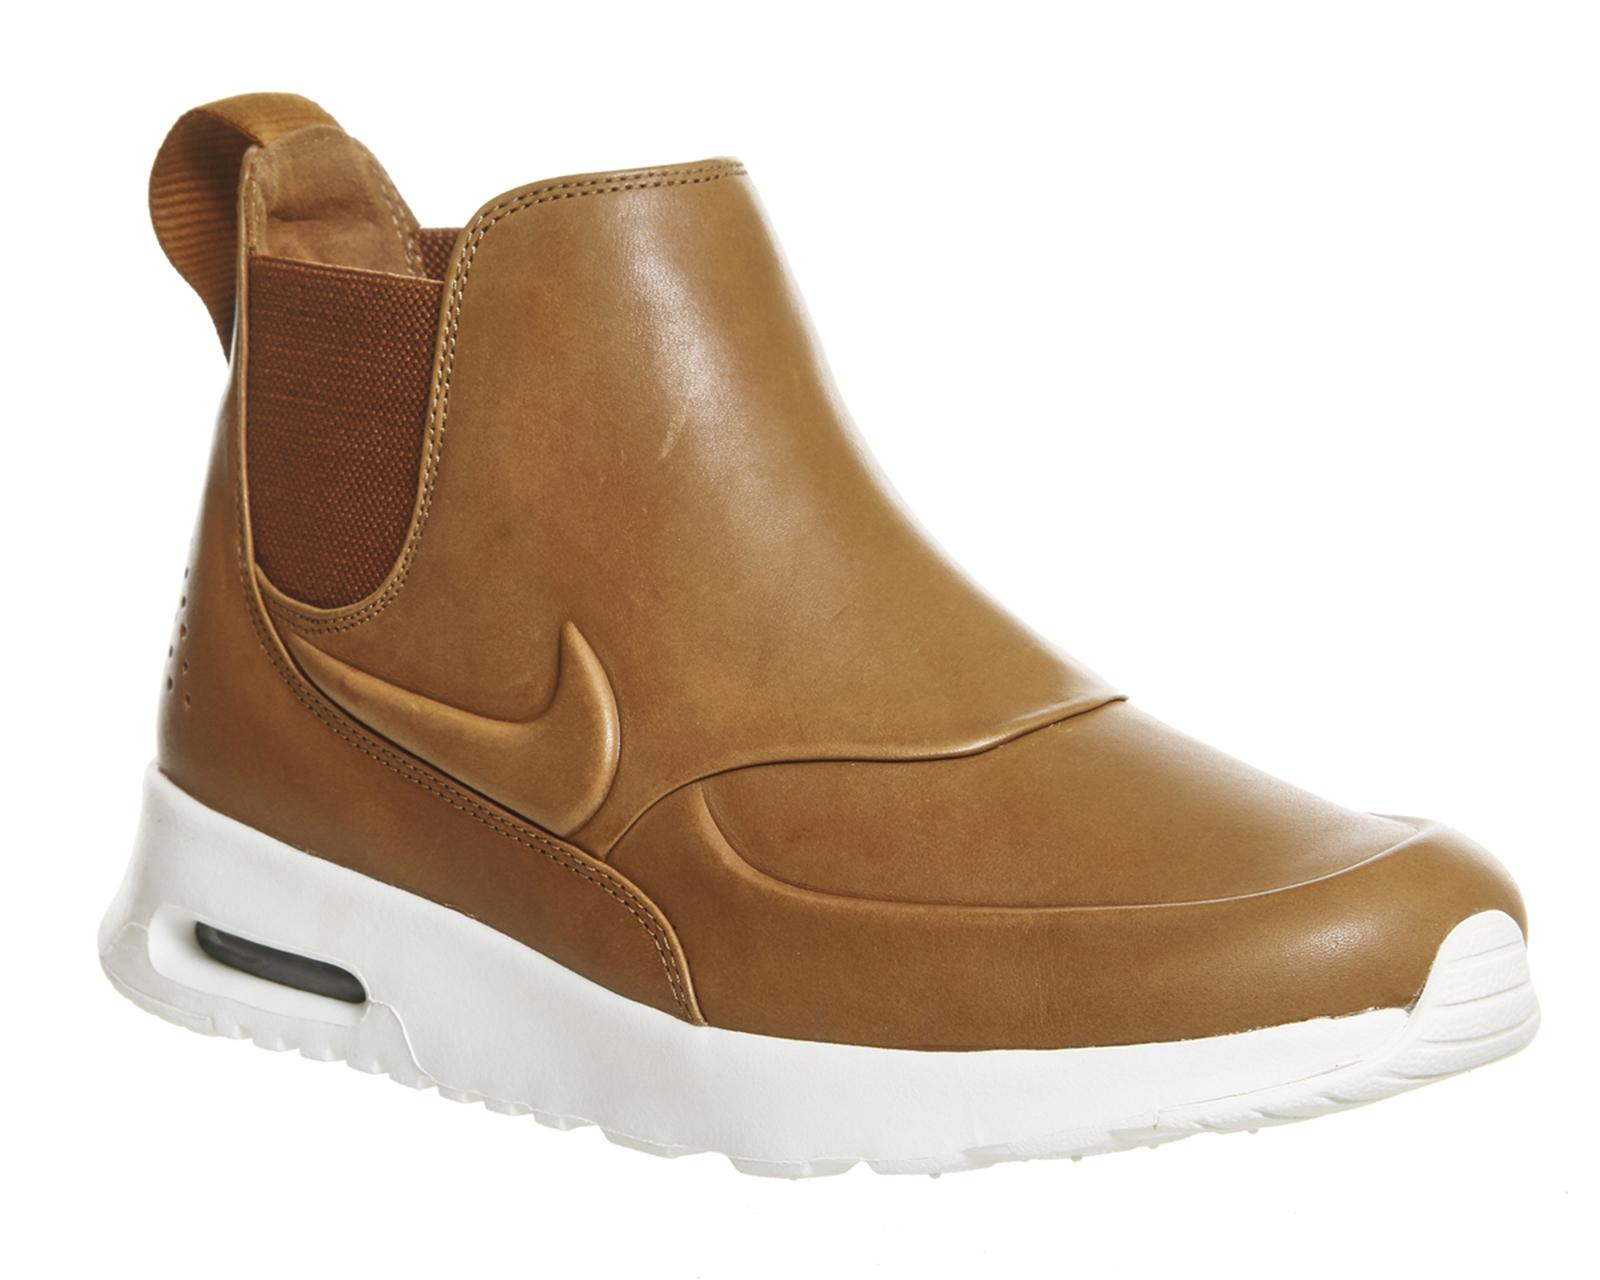 Nike Leather Air Max Thea Mid Wmns in